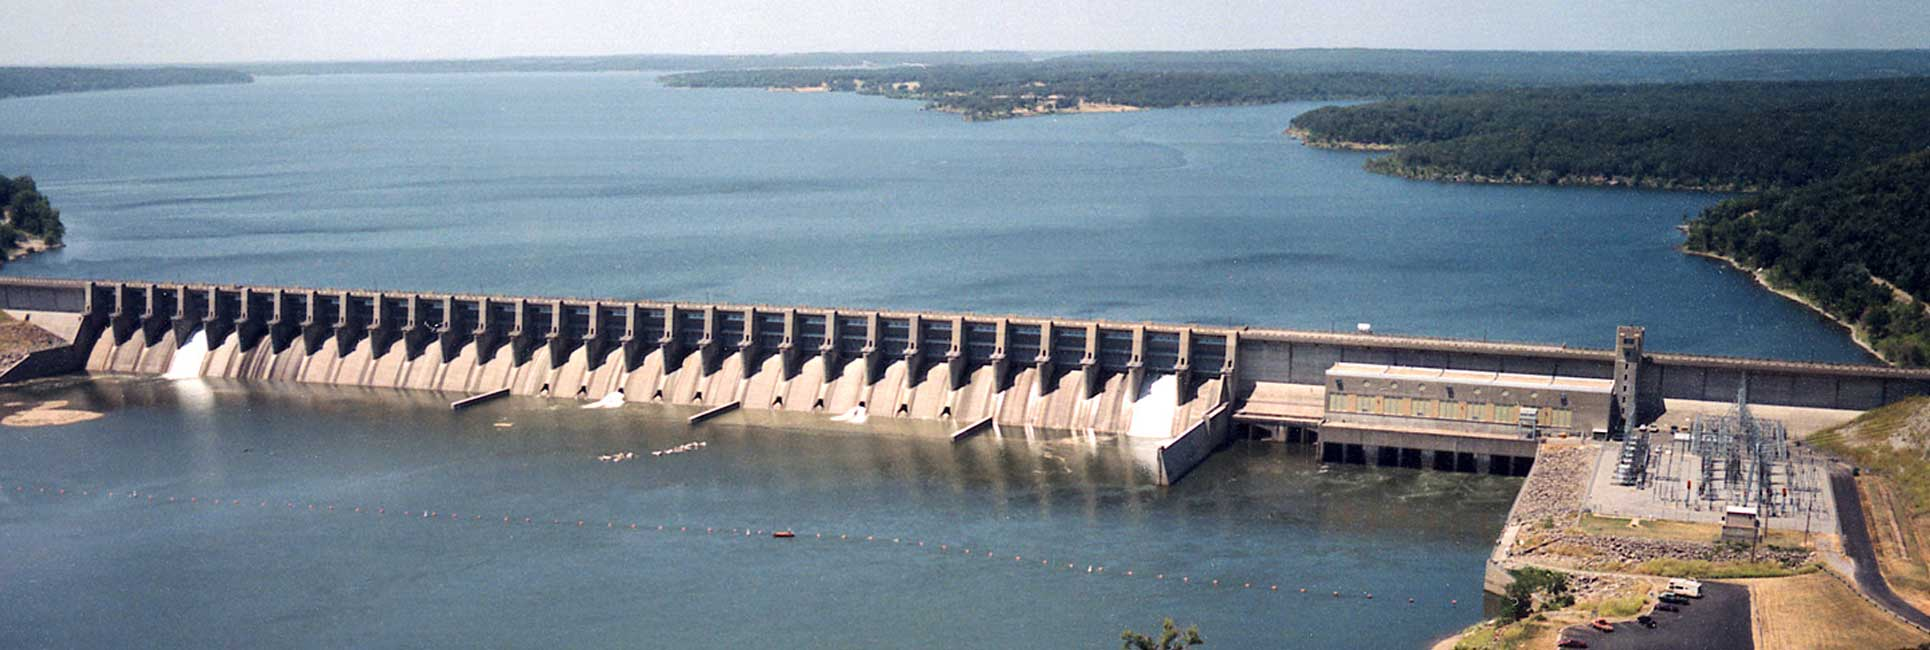 An Aerial shot of the Fort Gibson Dam in Oklahoma.